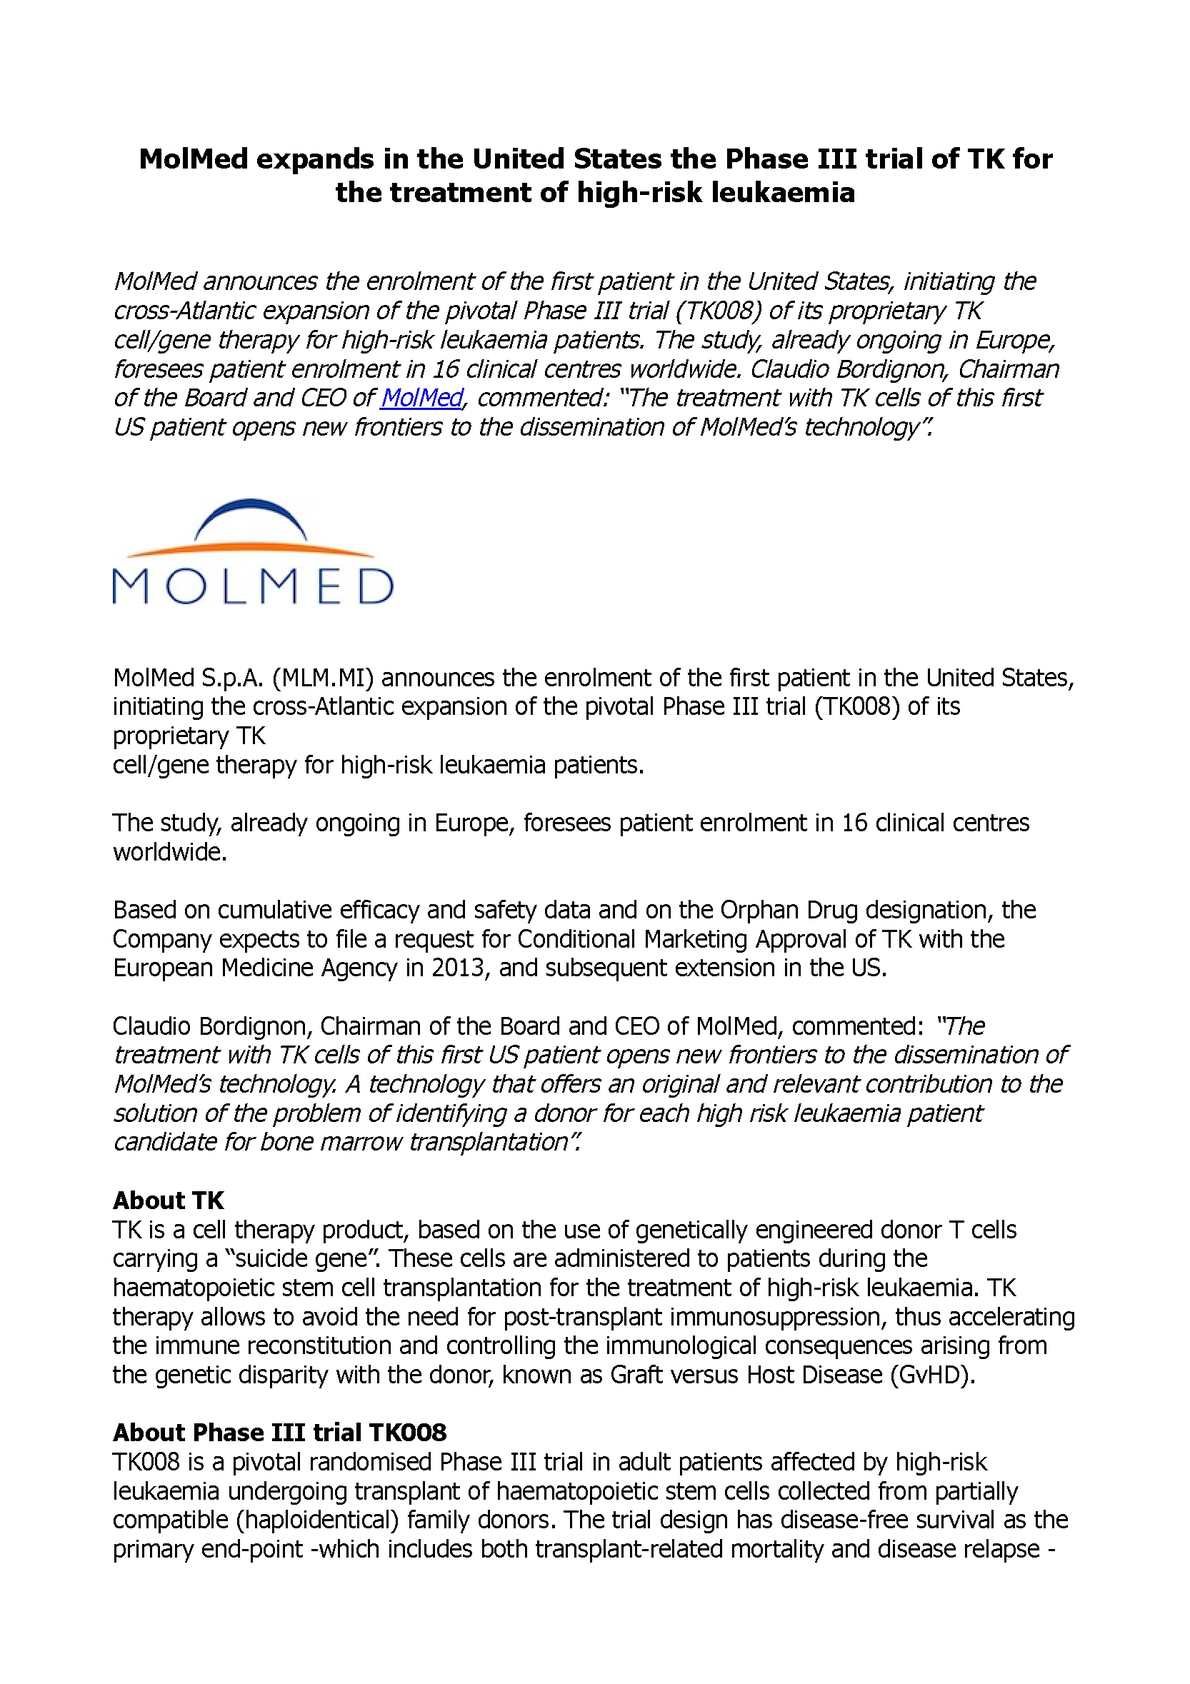 Calaméo - MolMed expands in the United States the Phase III